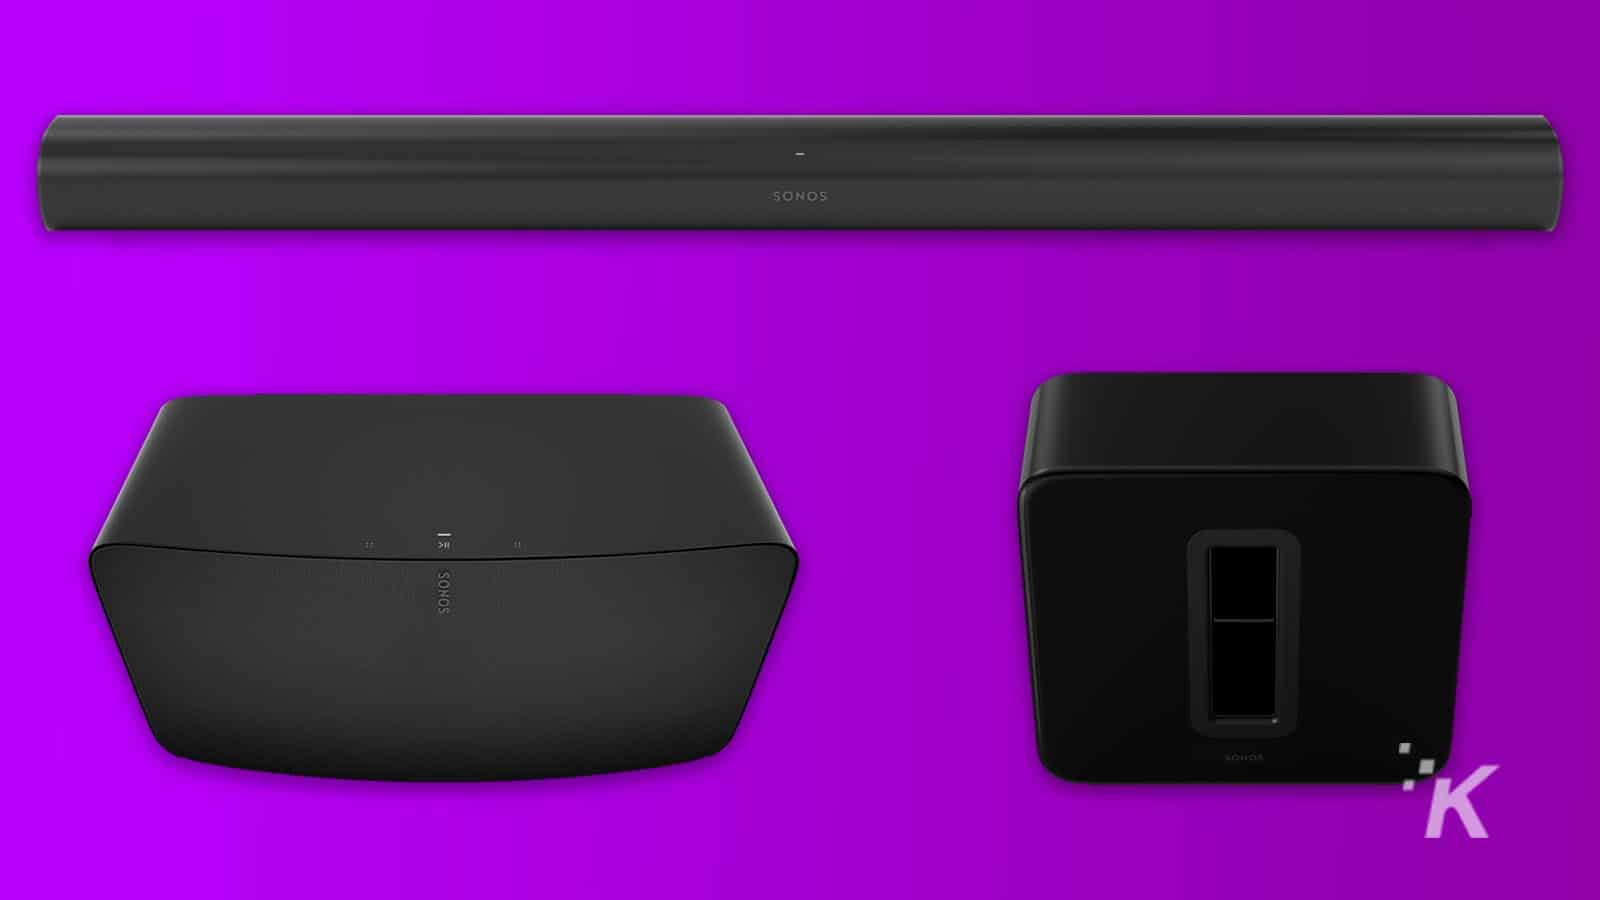 new sonos products